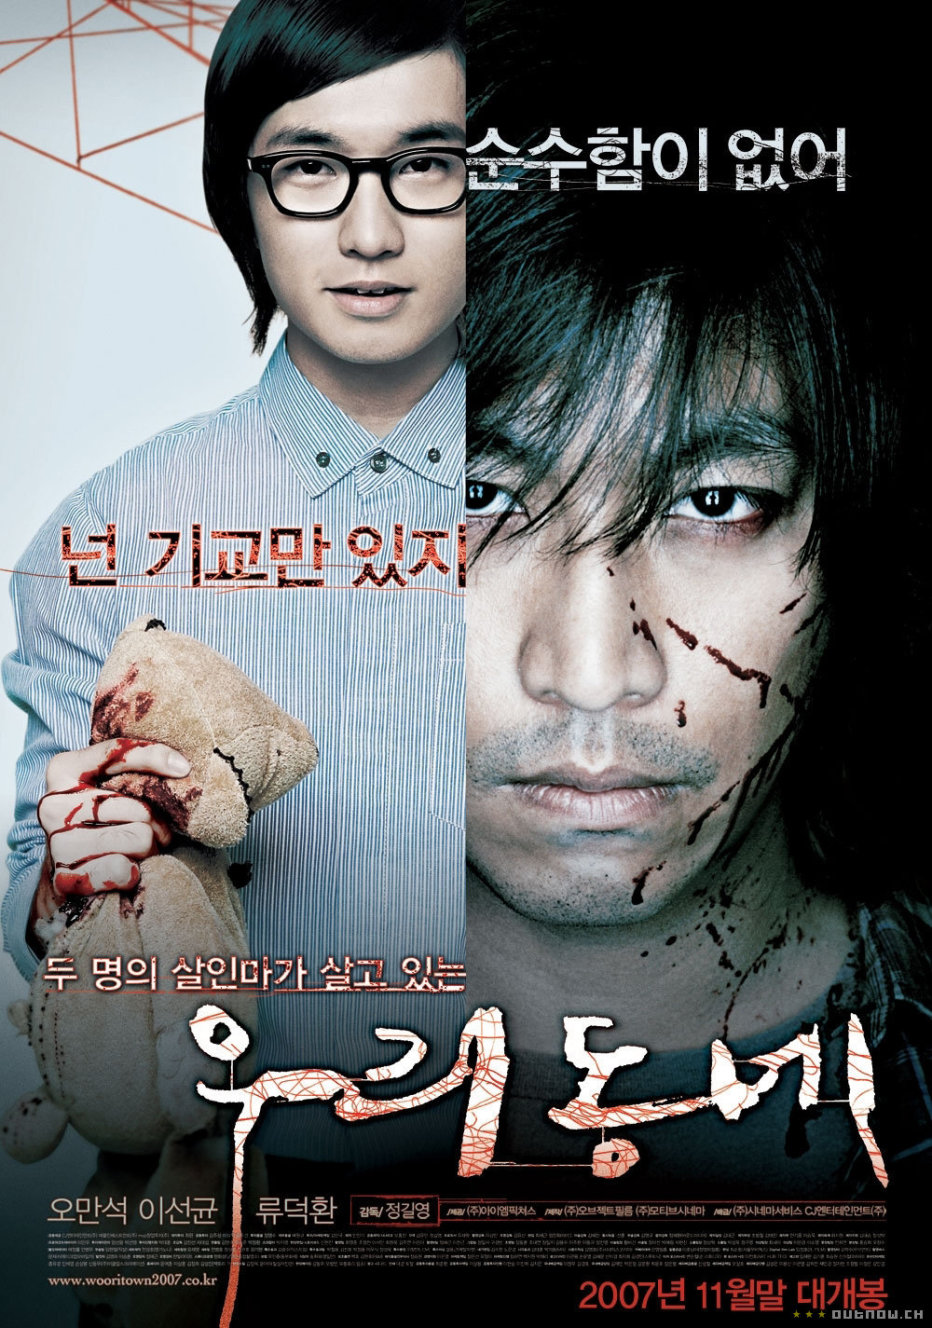 our-town-2007-jung-gil-yeong-02.jpg